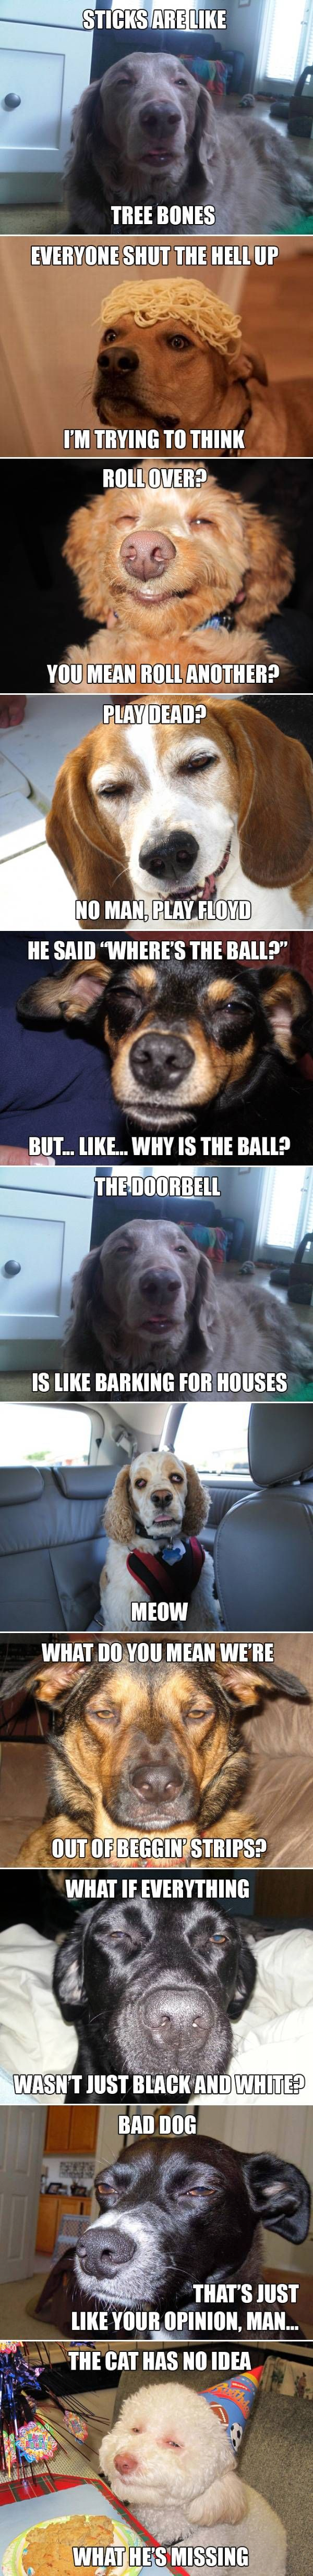 stoner dogs: i dare you not to laugh... i laughed ( marijuana cannabis )